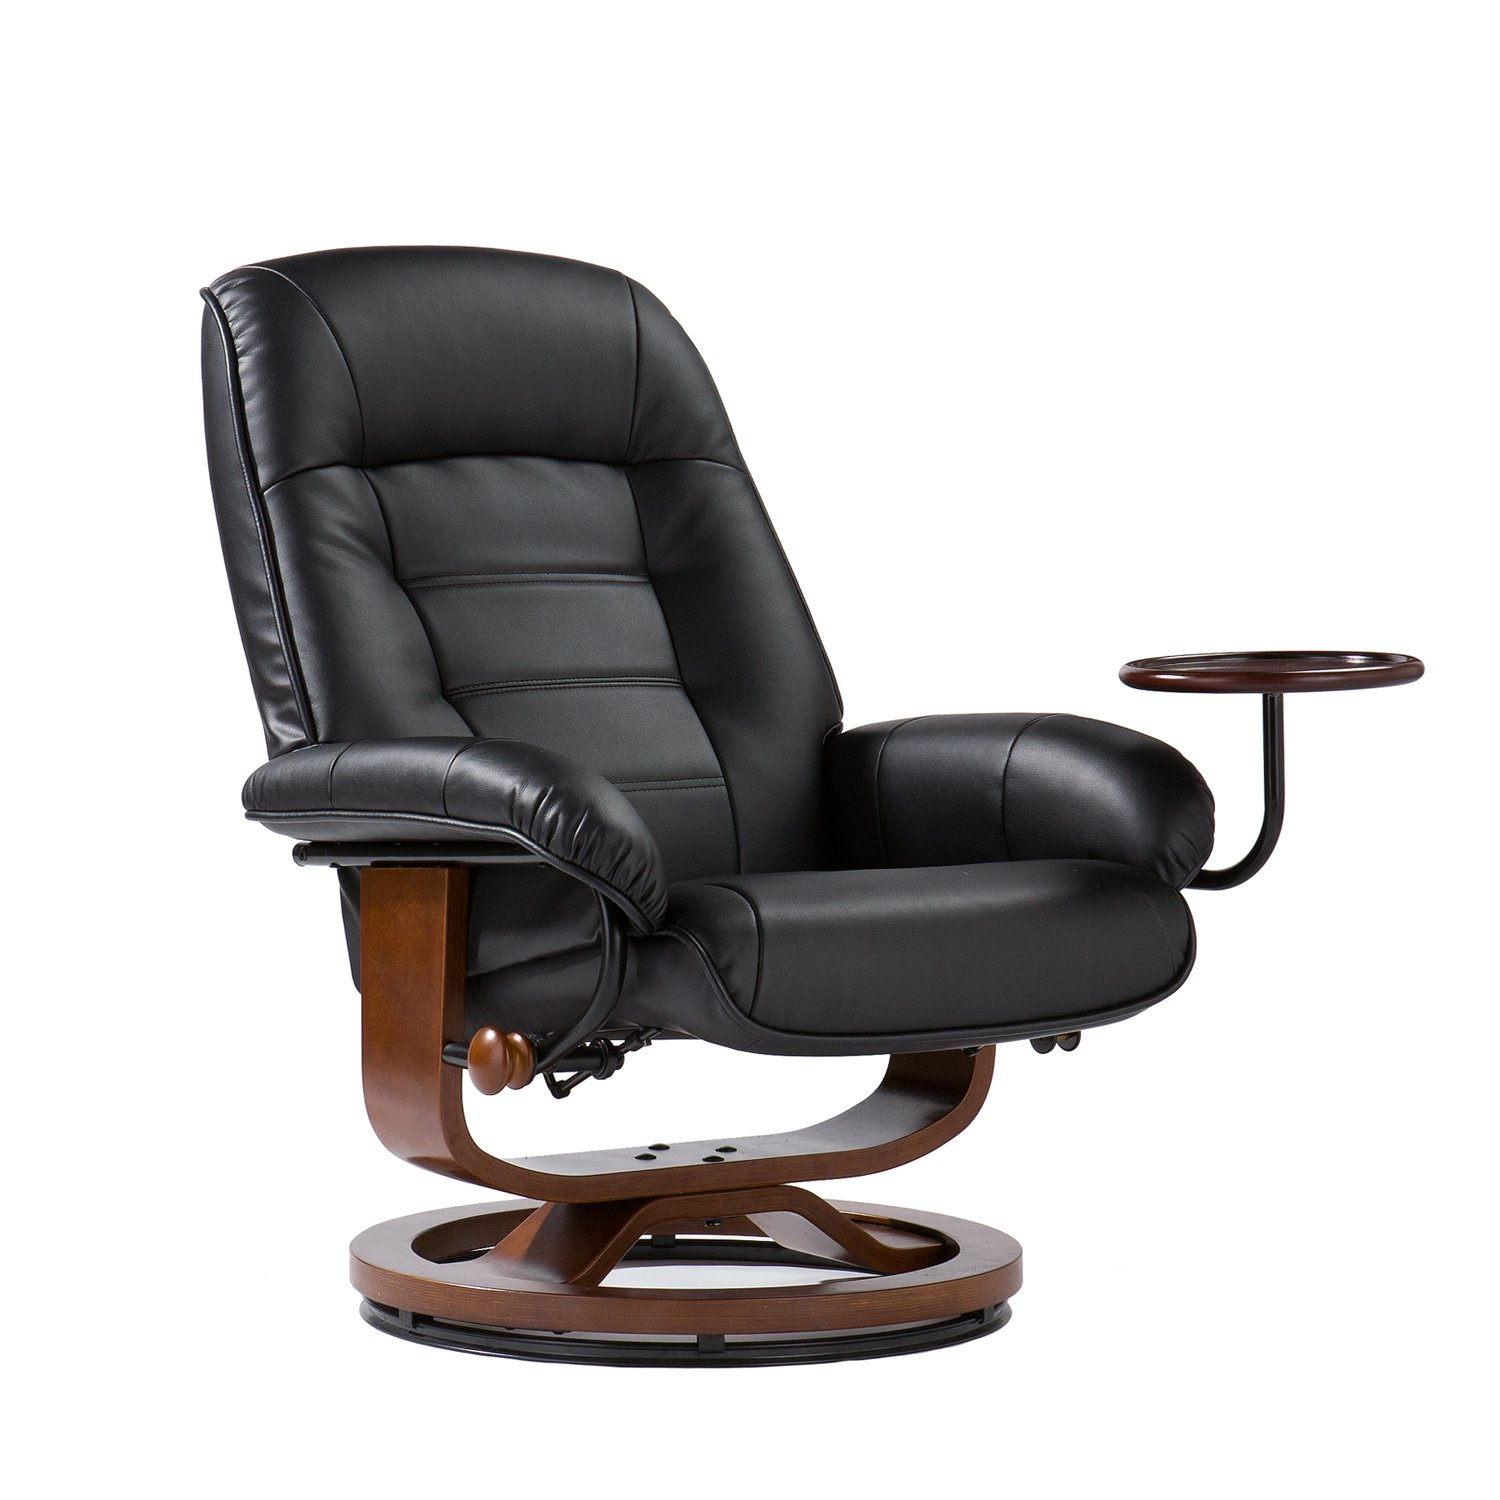 Amazon Adjustable Black Leather Recliner and Ottoman fice